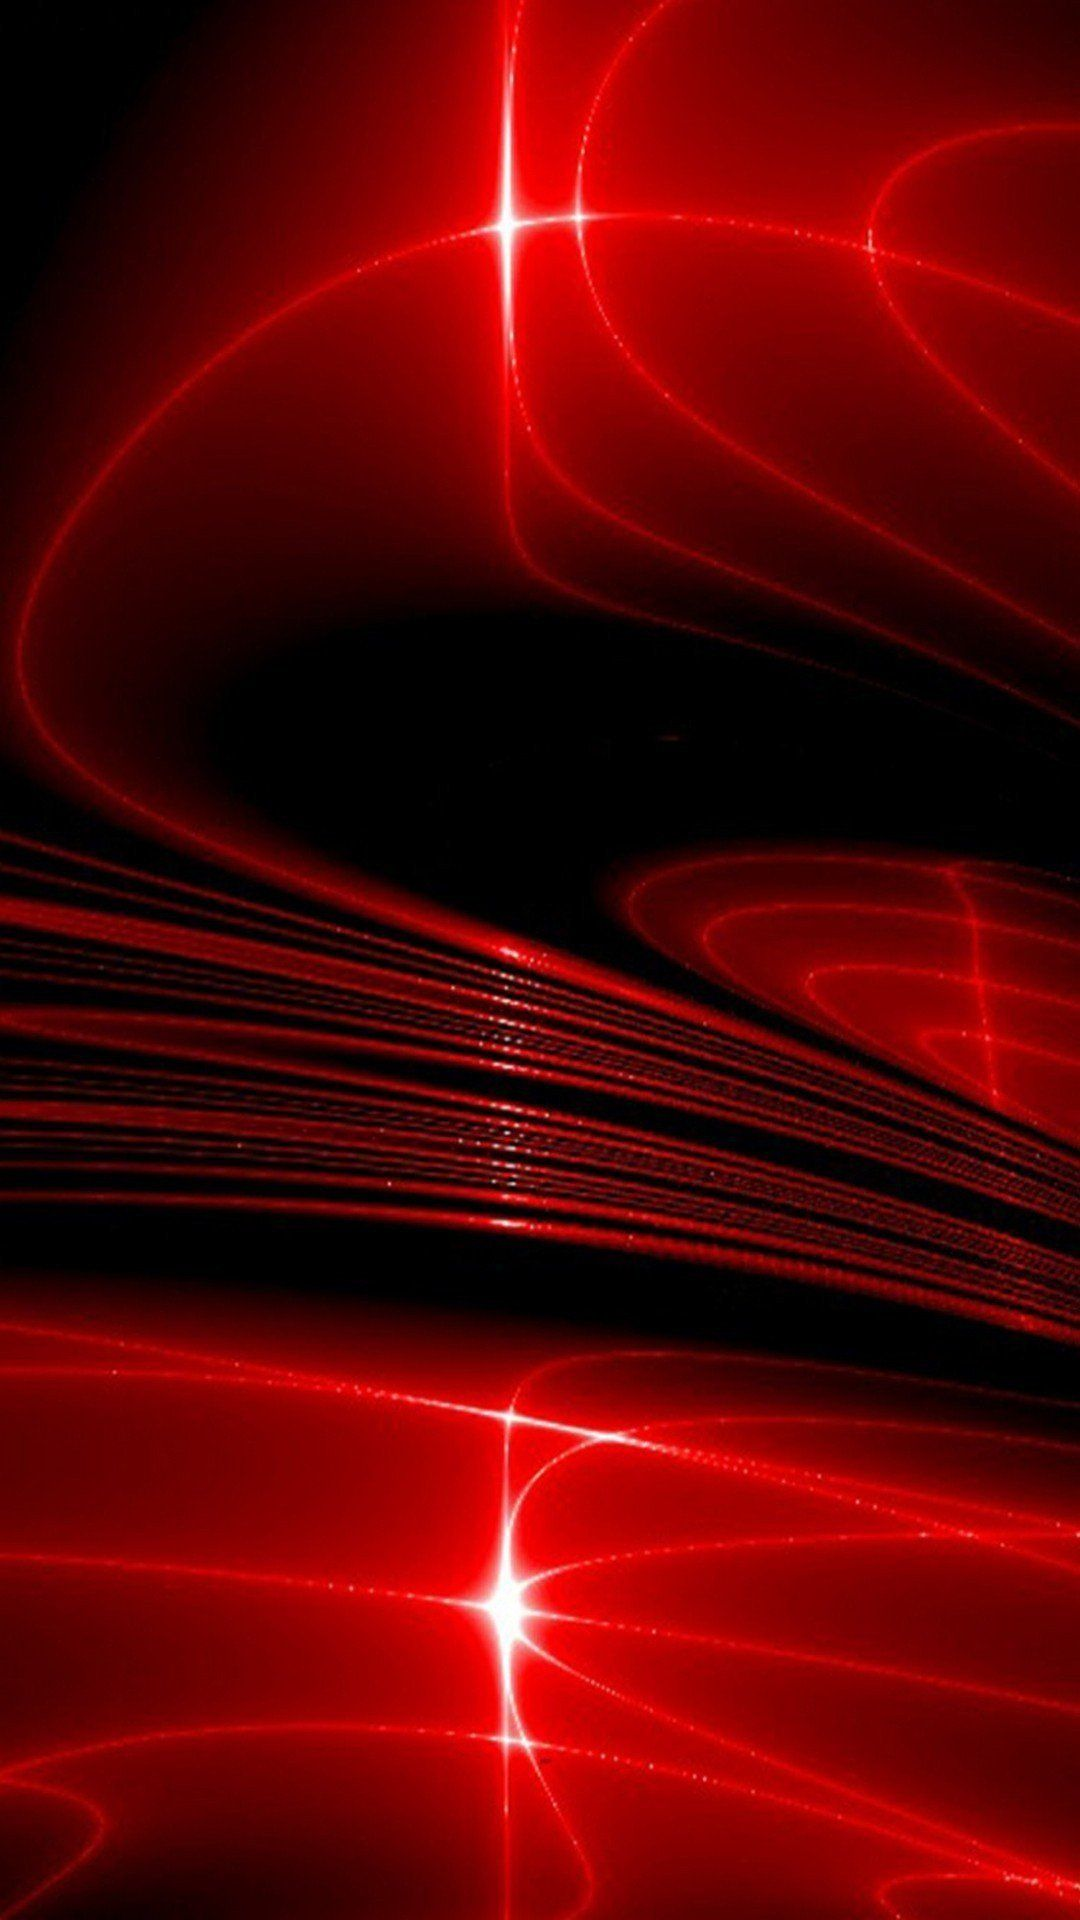 Cool Red Dark Hd Mobile Wallpaper Cool Red Dark Hd Mobile Wallpaper Abstract Download Free Mobile Hd Cool Wallpapers Mobile Wallpaper Hd Wallpapers For Mobile Cool wallpaper for iphone 7 plus red